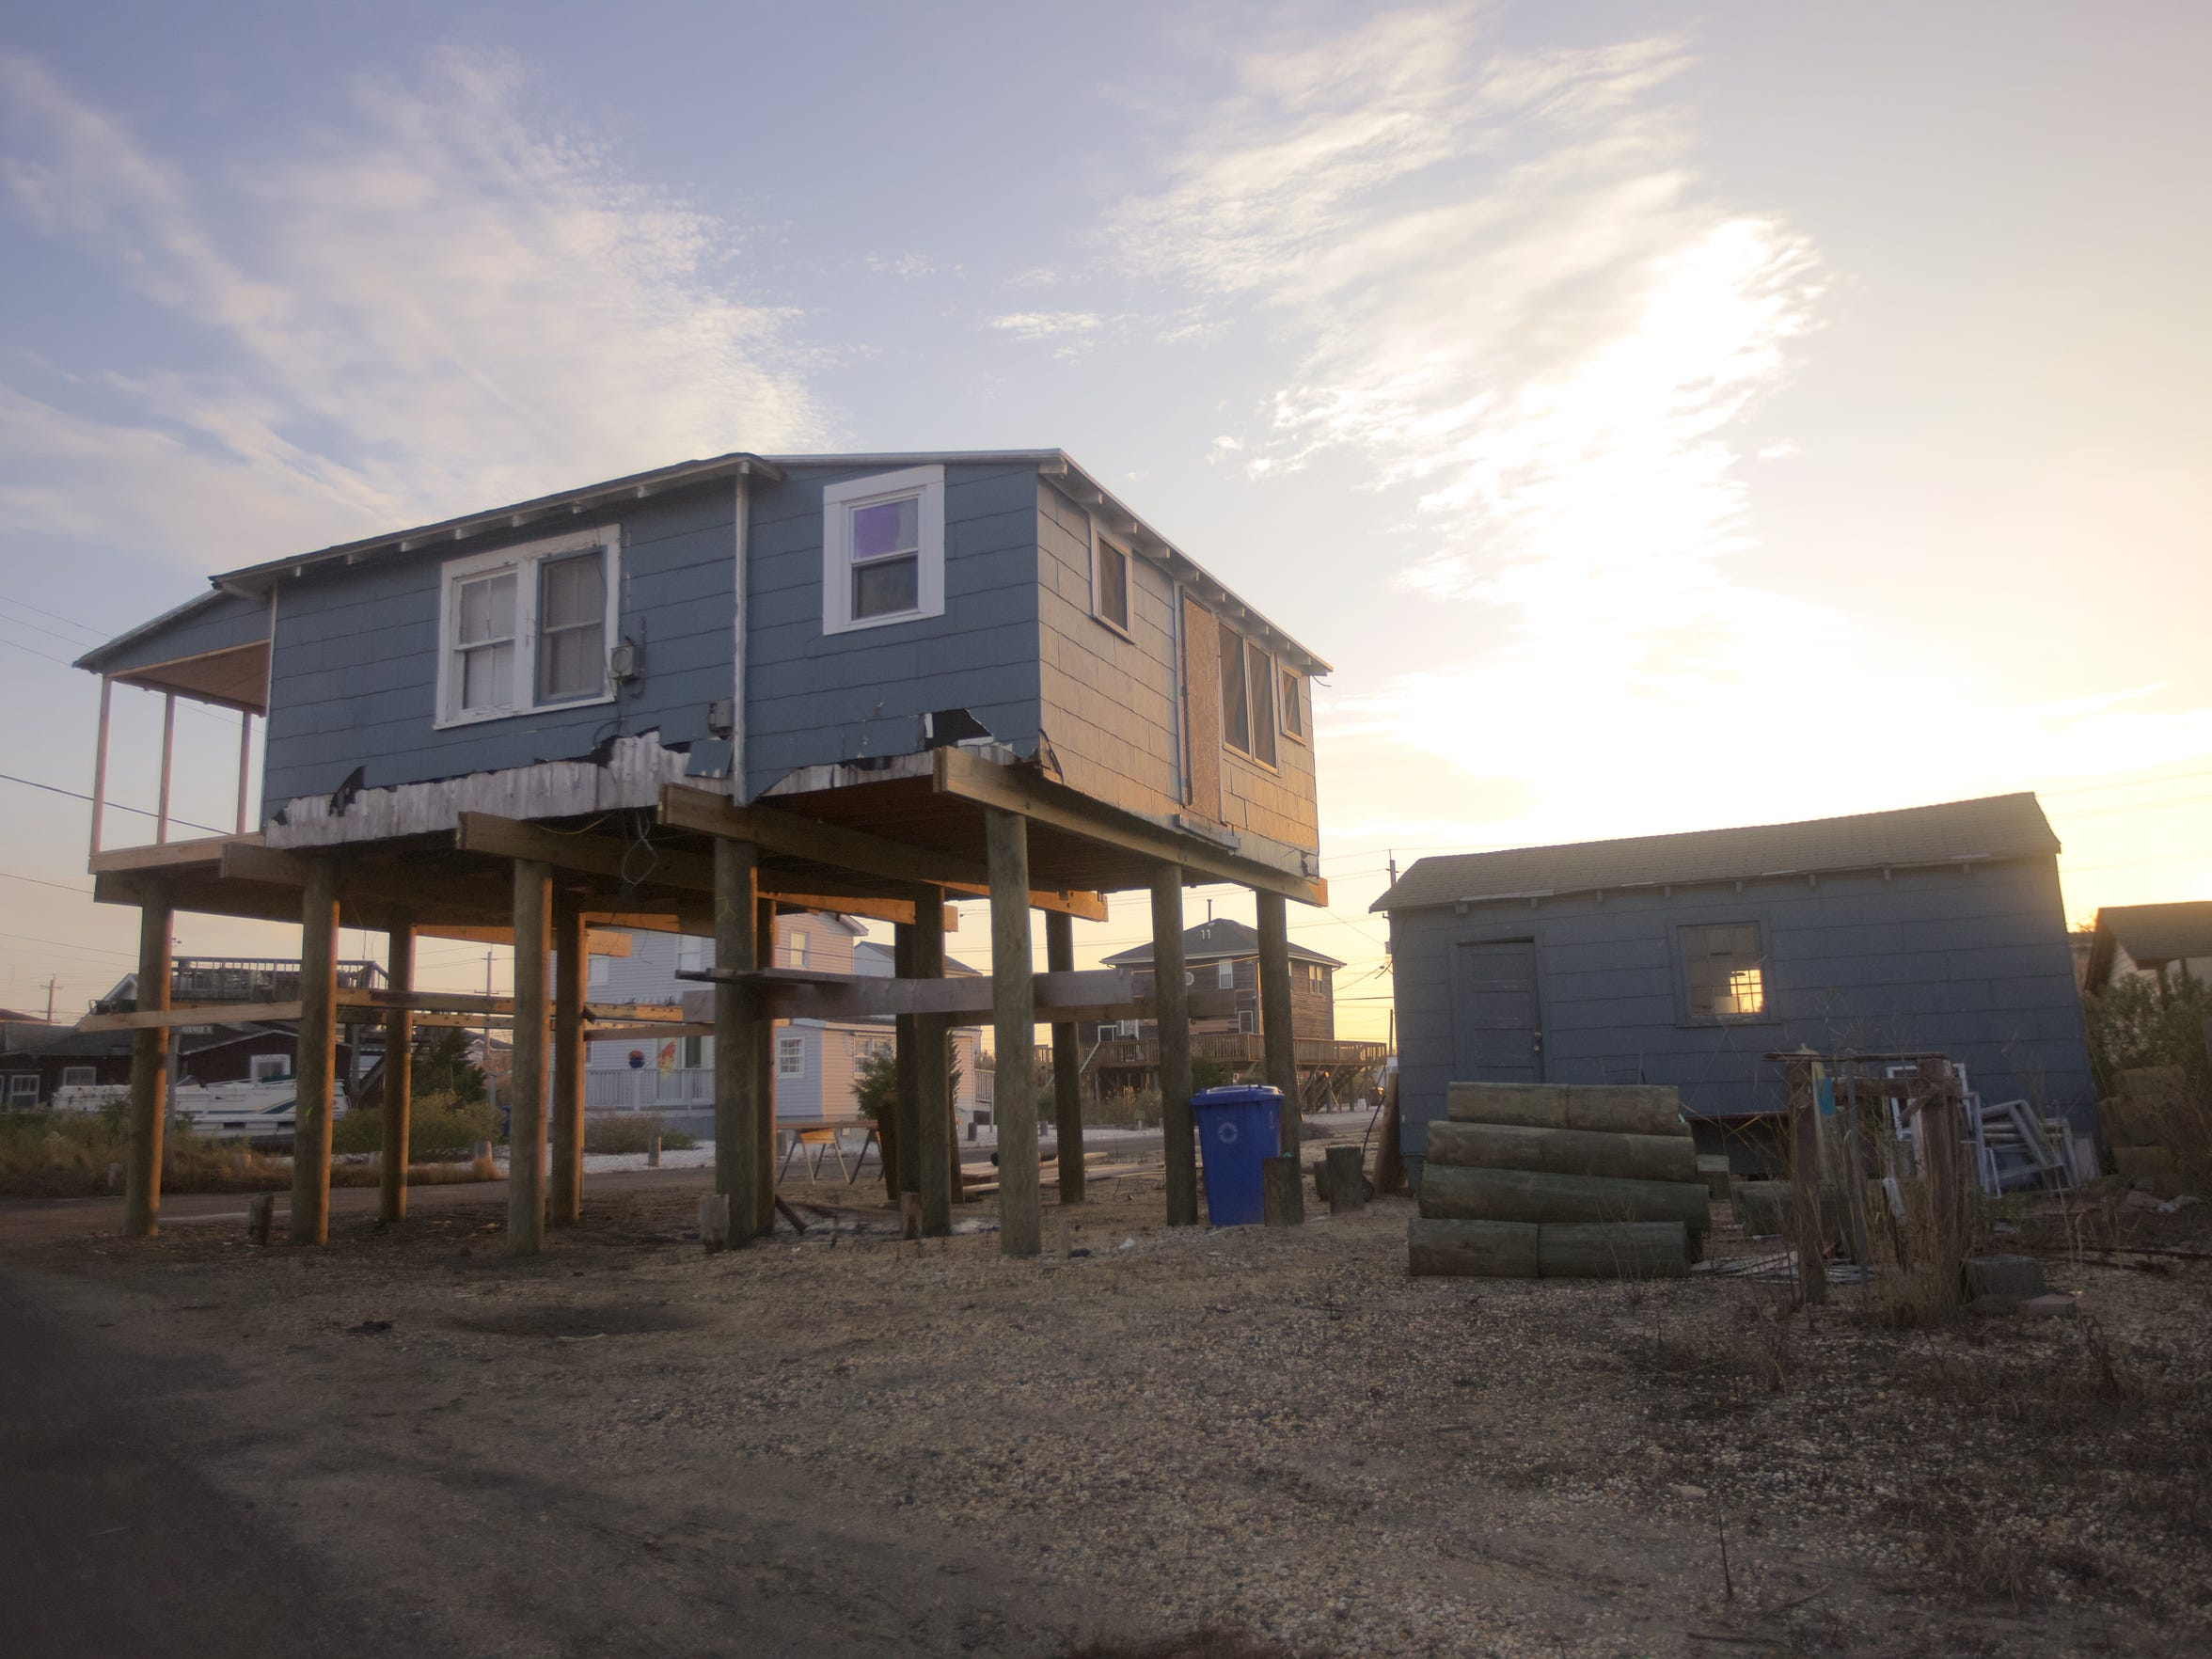 There are still homes in the area recovering from Superstorm Sandy.